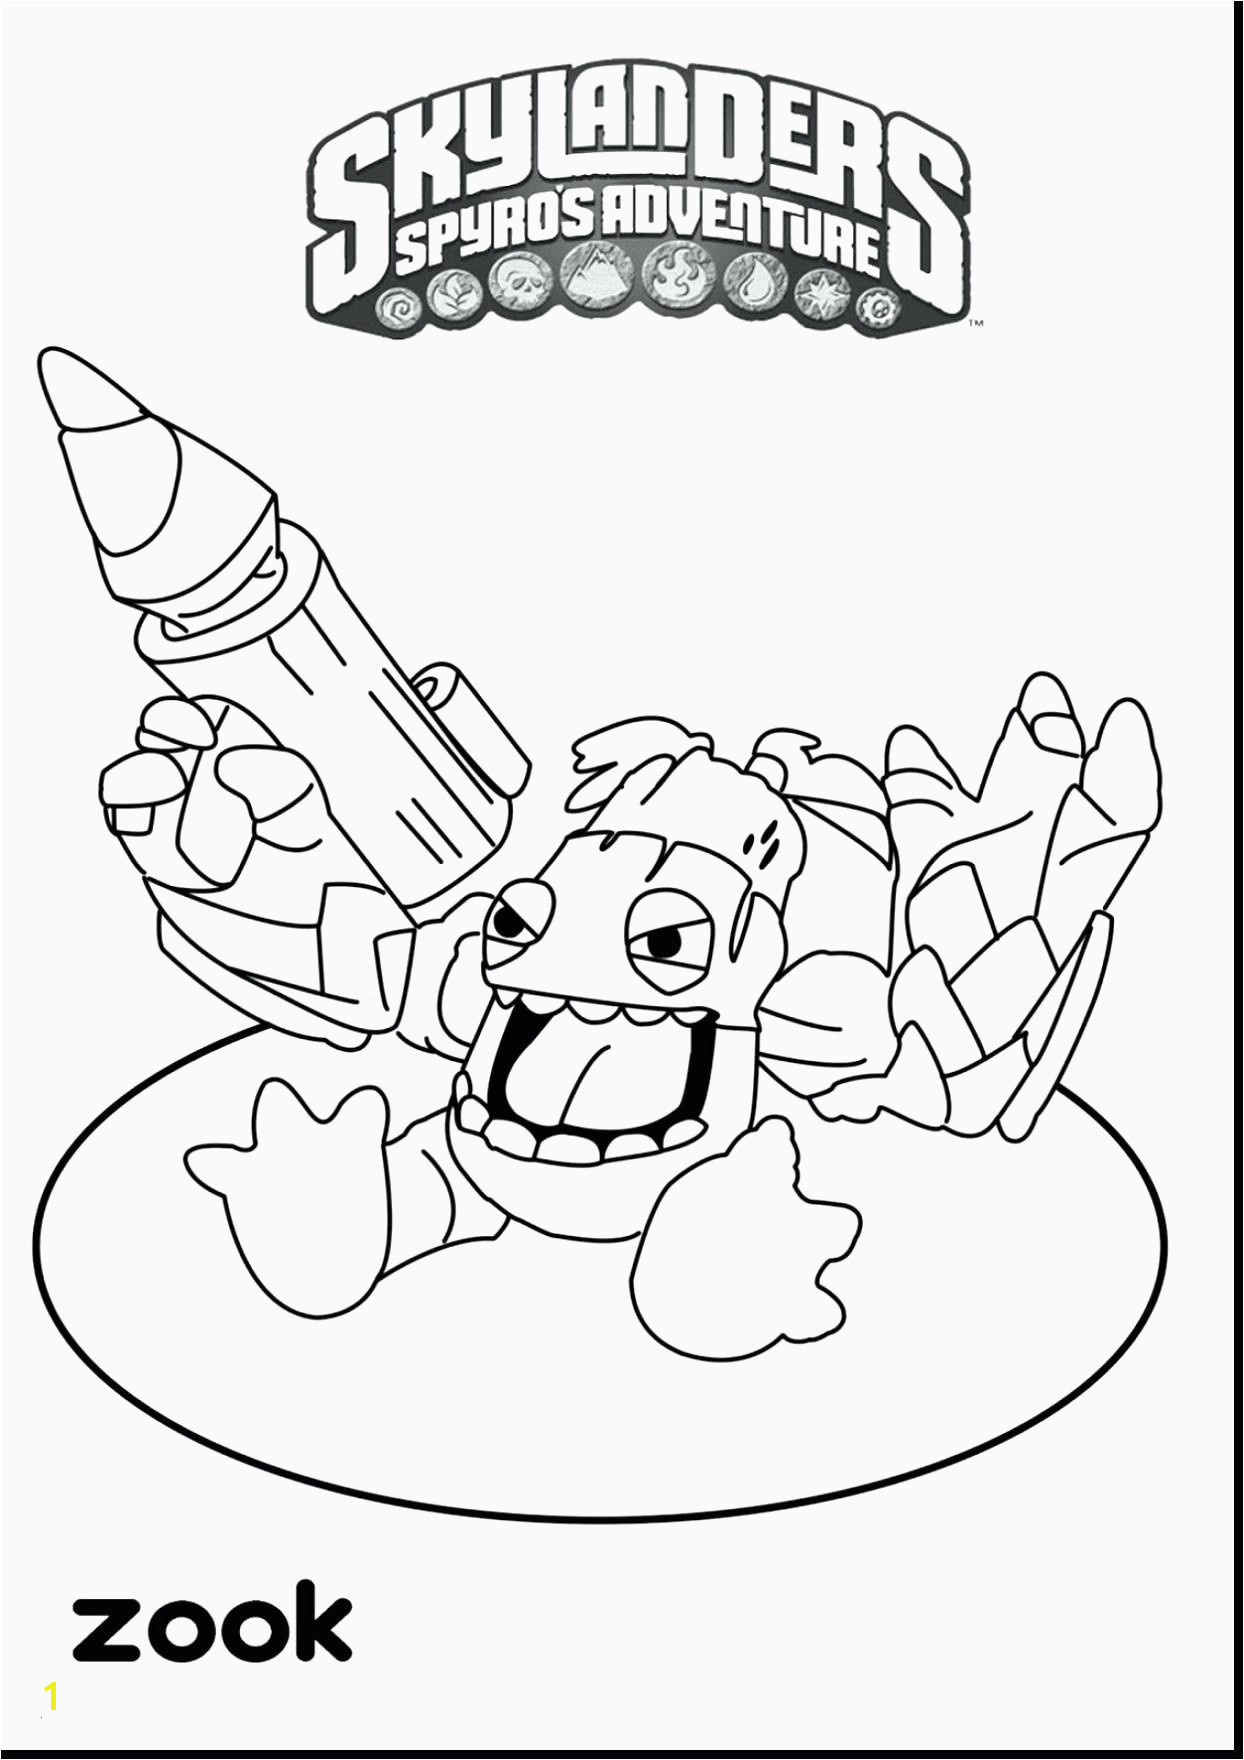 Epic Movie Coloring Pages Great toilet Coloring Page Verikira